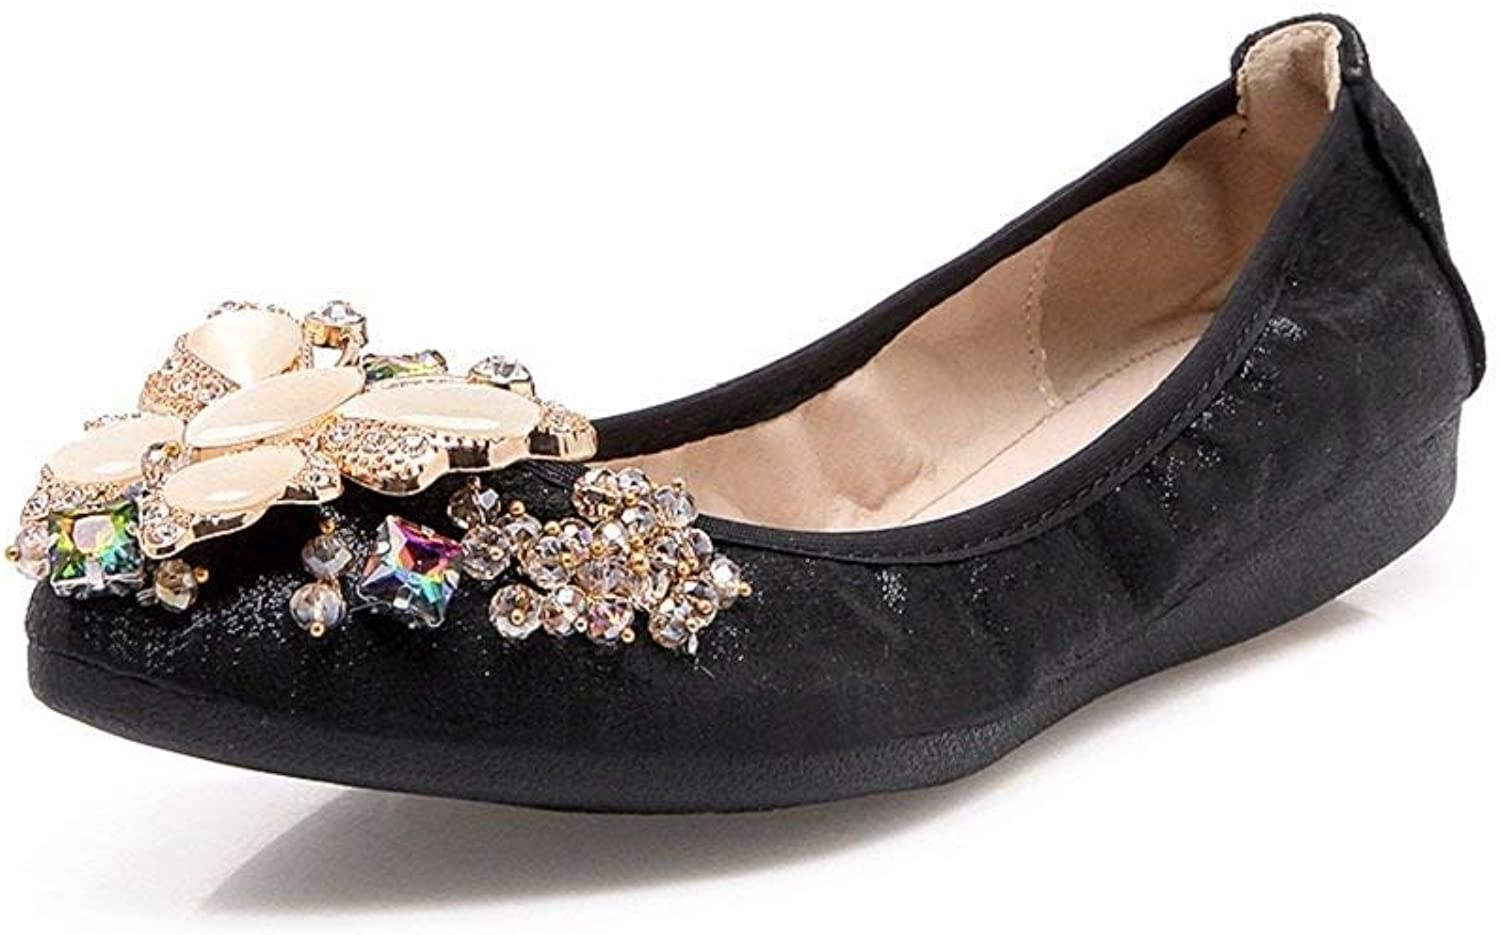 A-LING Womens Foldable Ballet Flats Rhinestone Comfort Wedding shoes